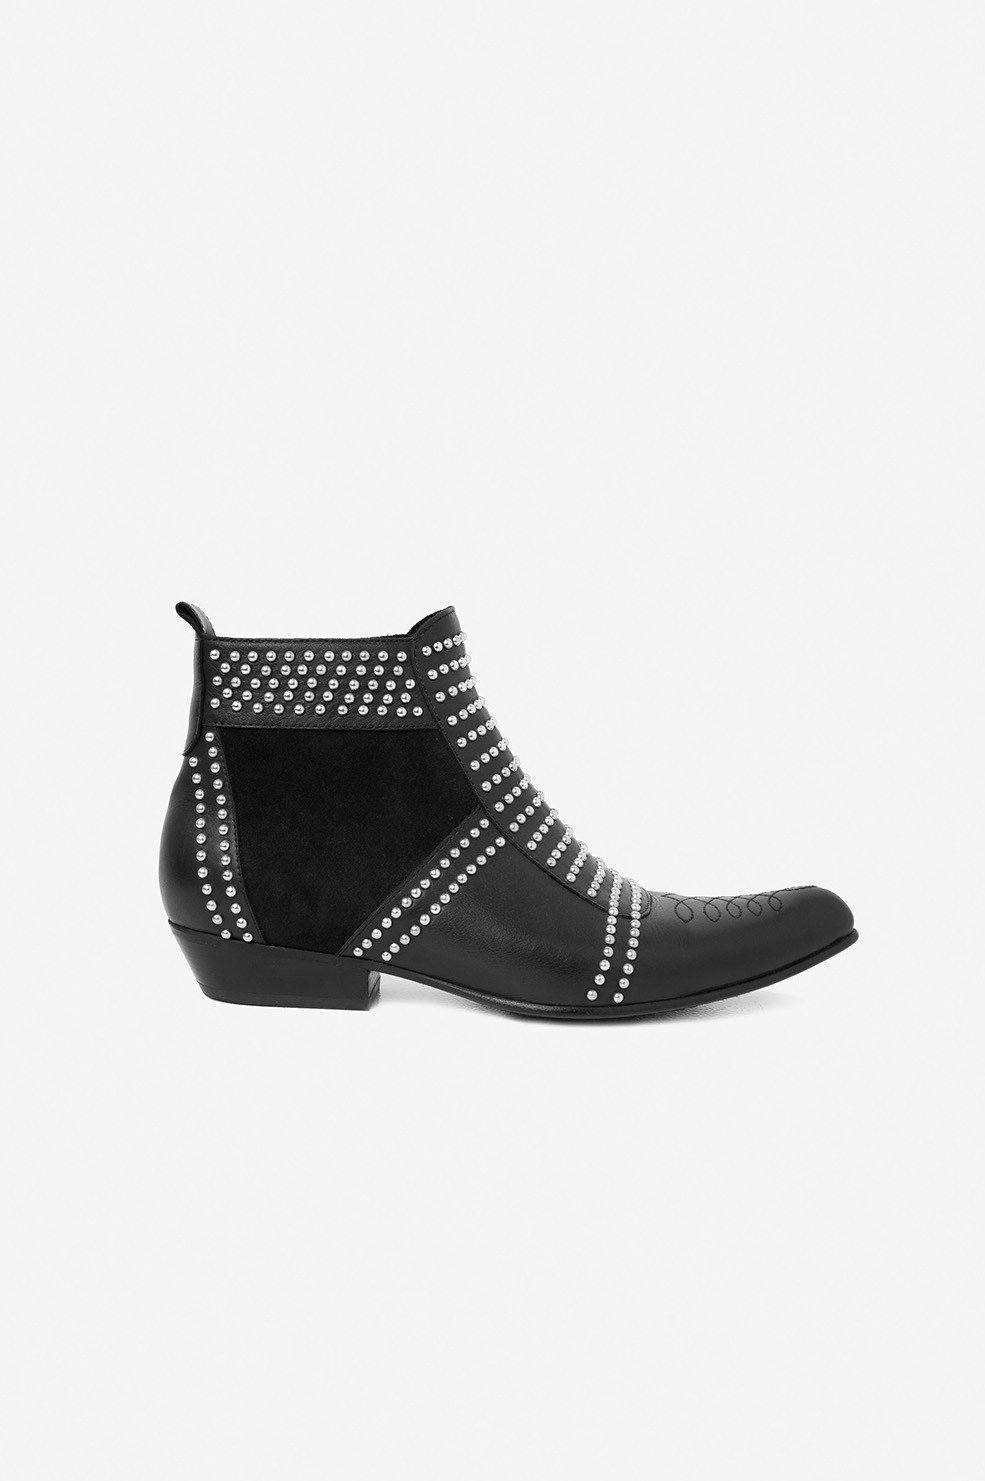 Charlie Boots - Silver Studs